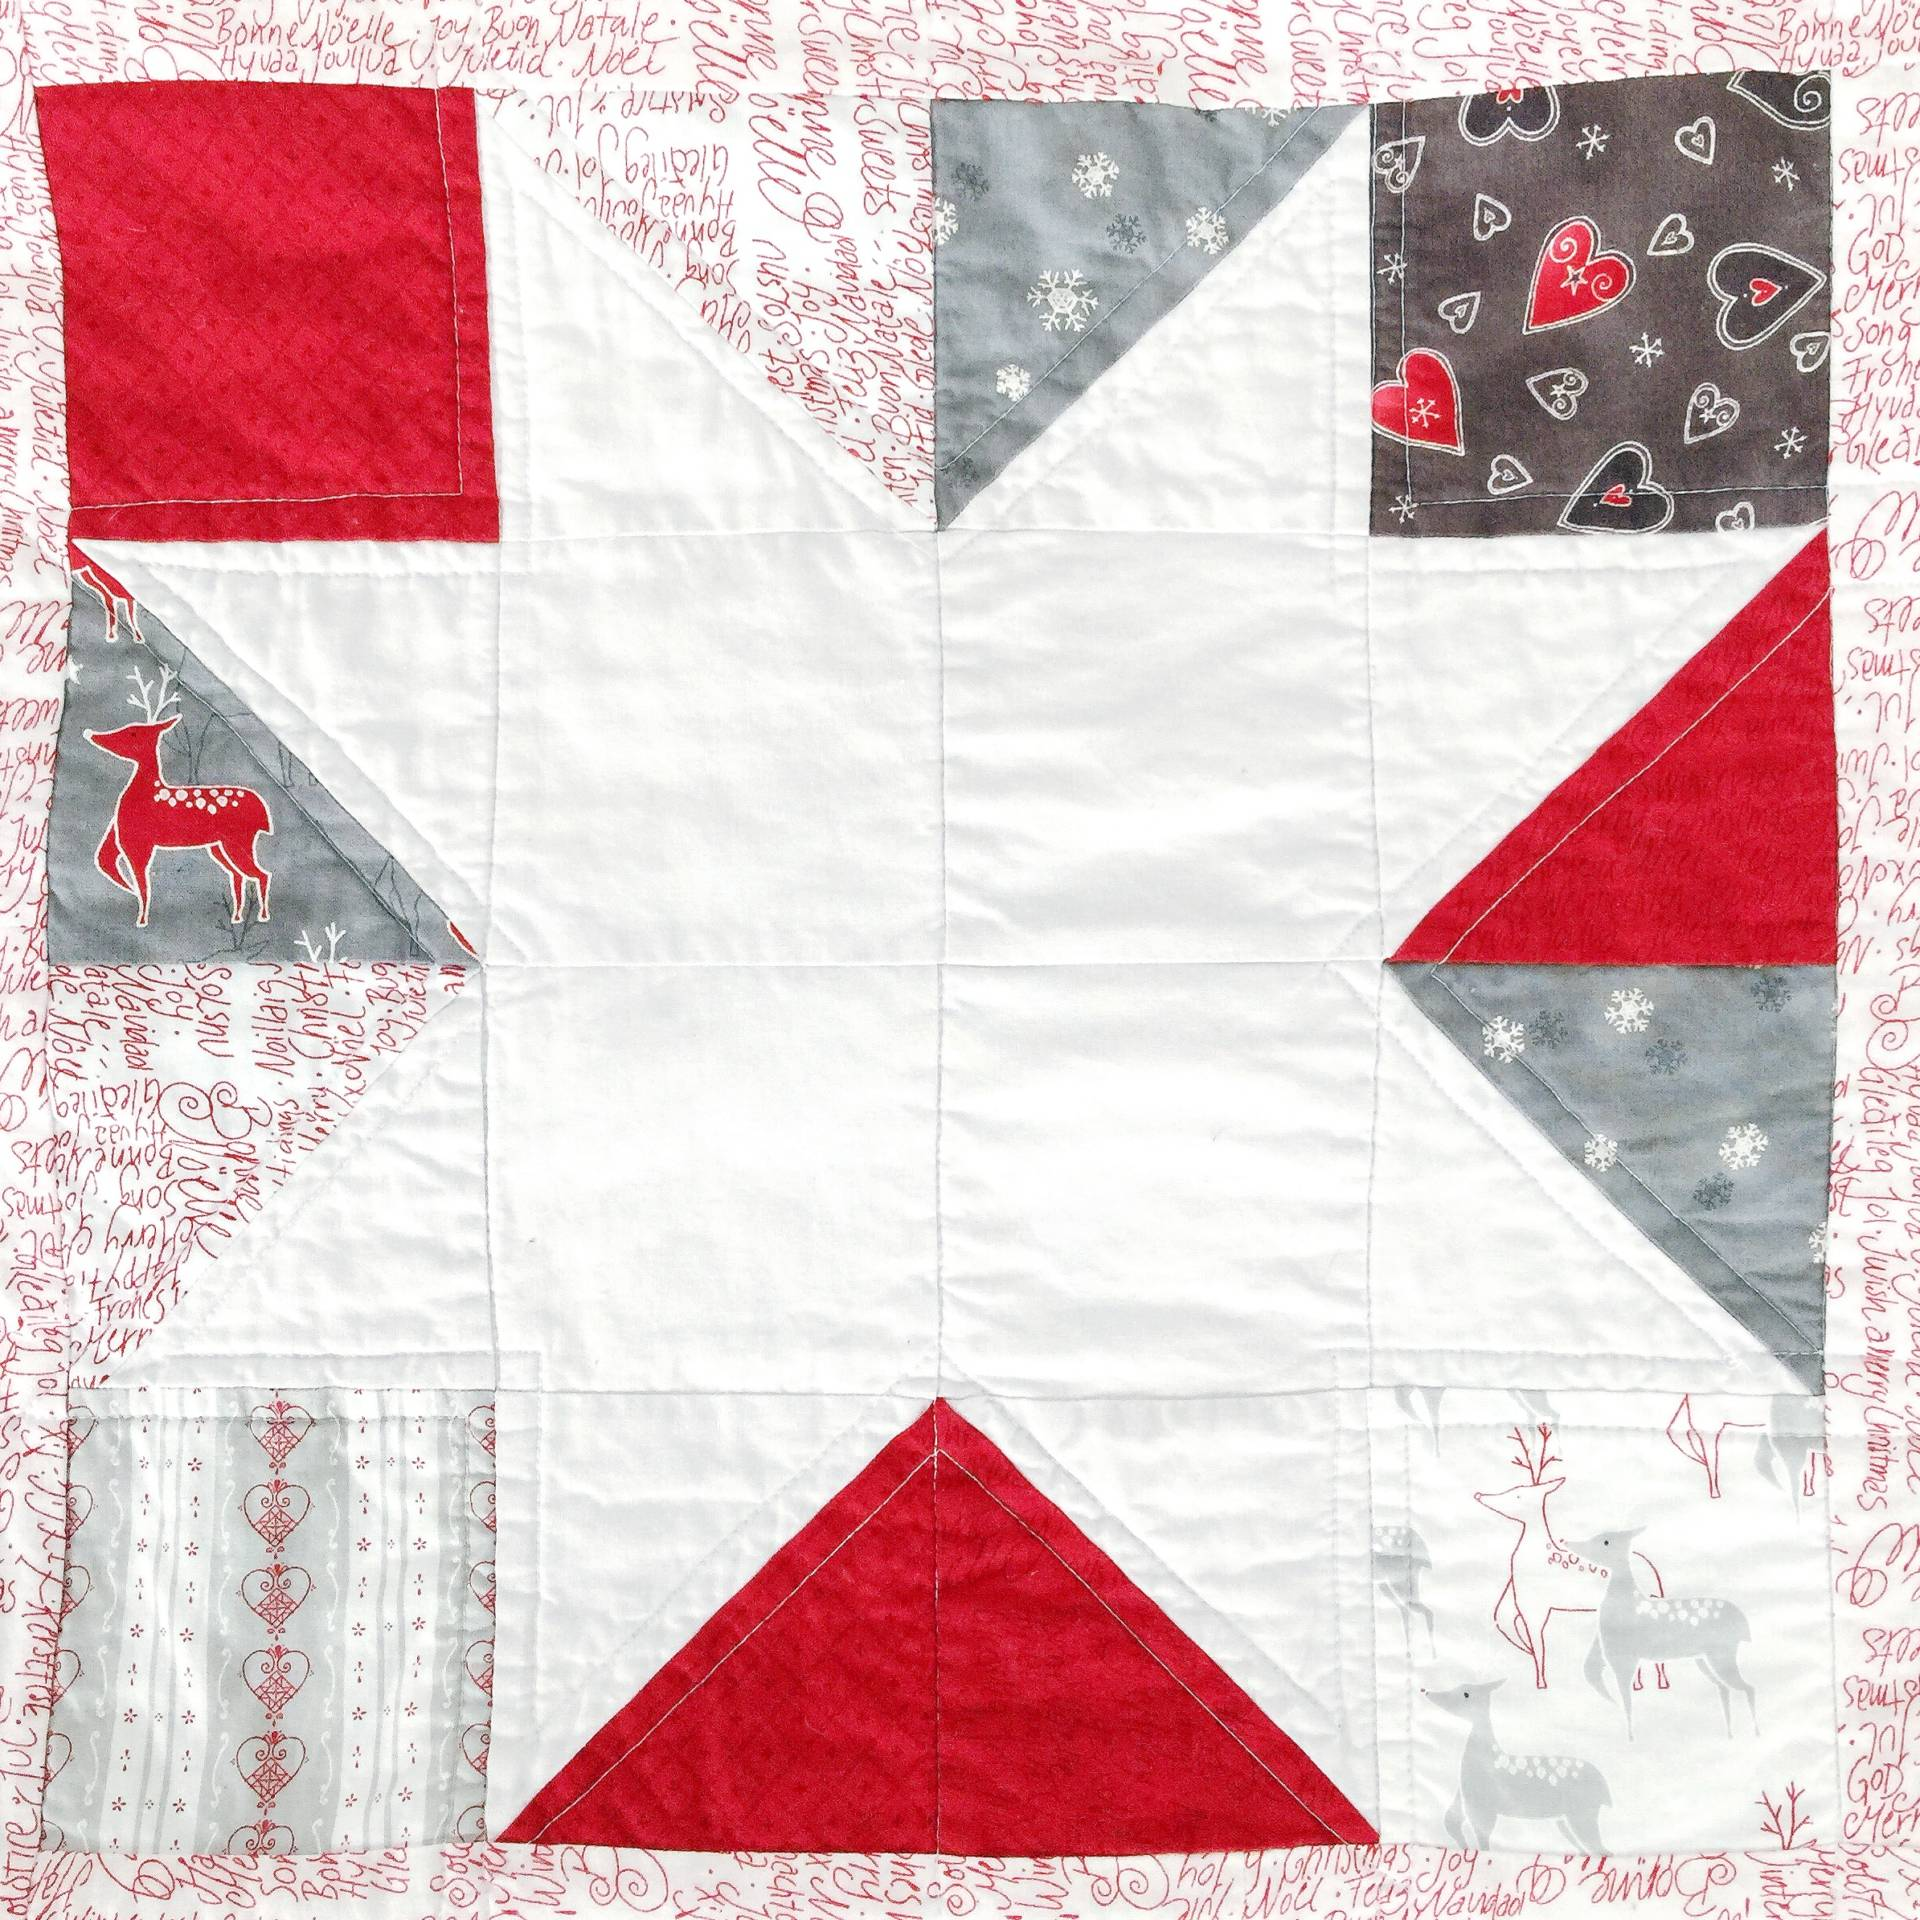 HST Triangle quilt from the Moda Jol charm pack! Obsessed with these little reindeer!